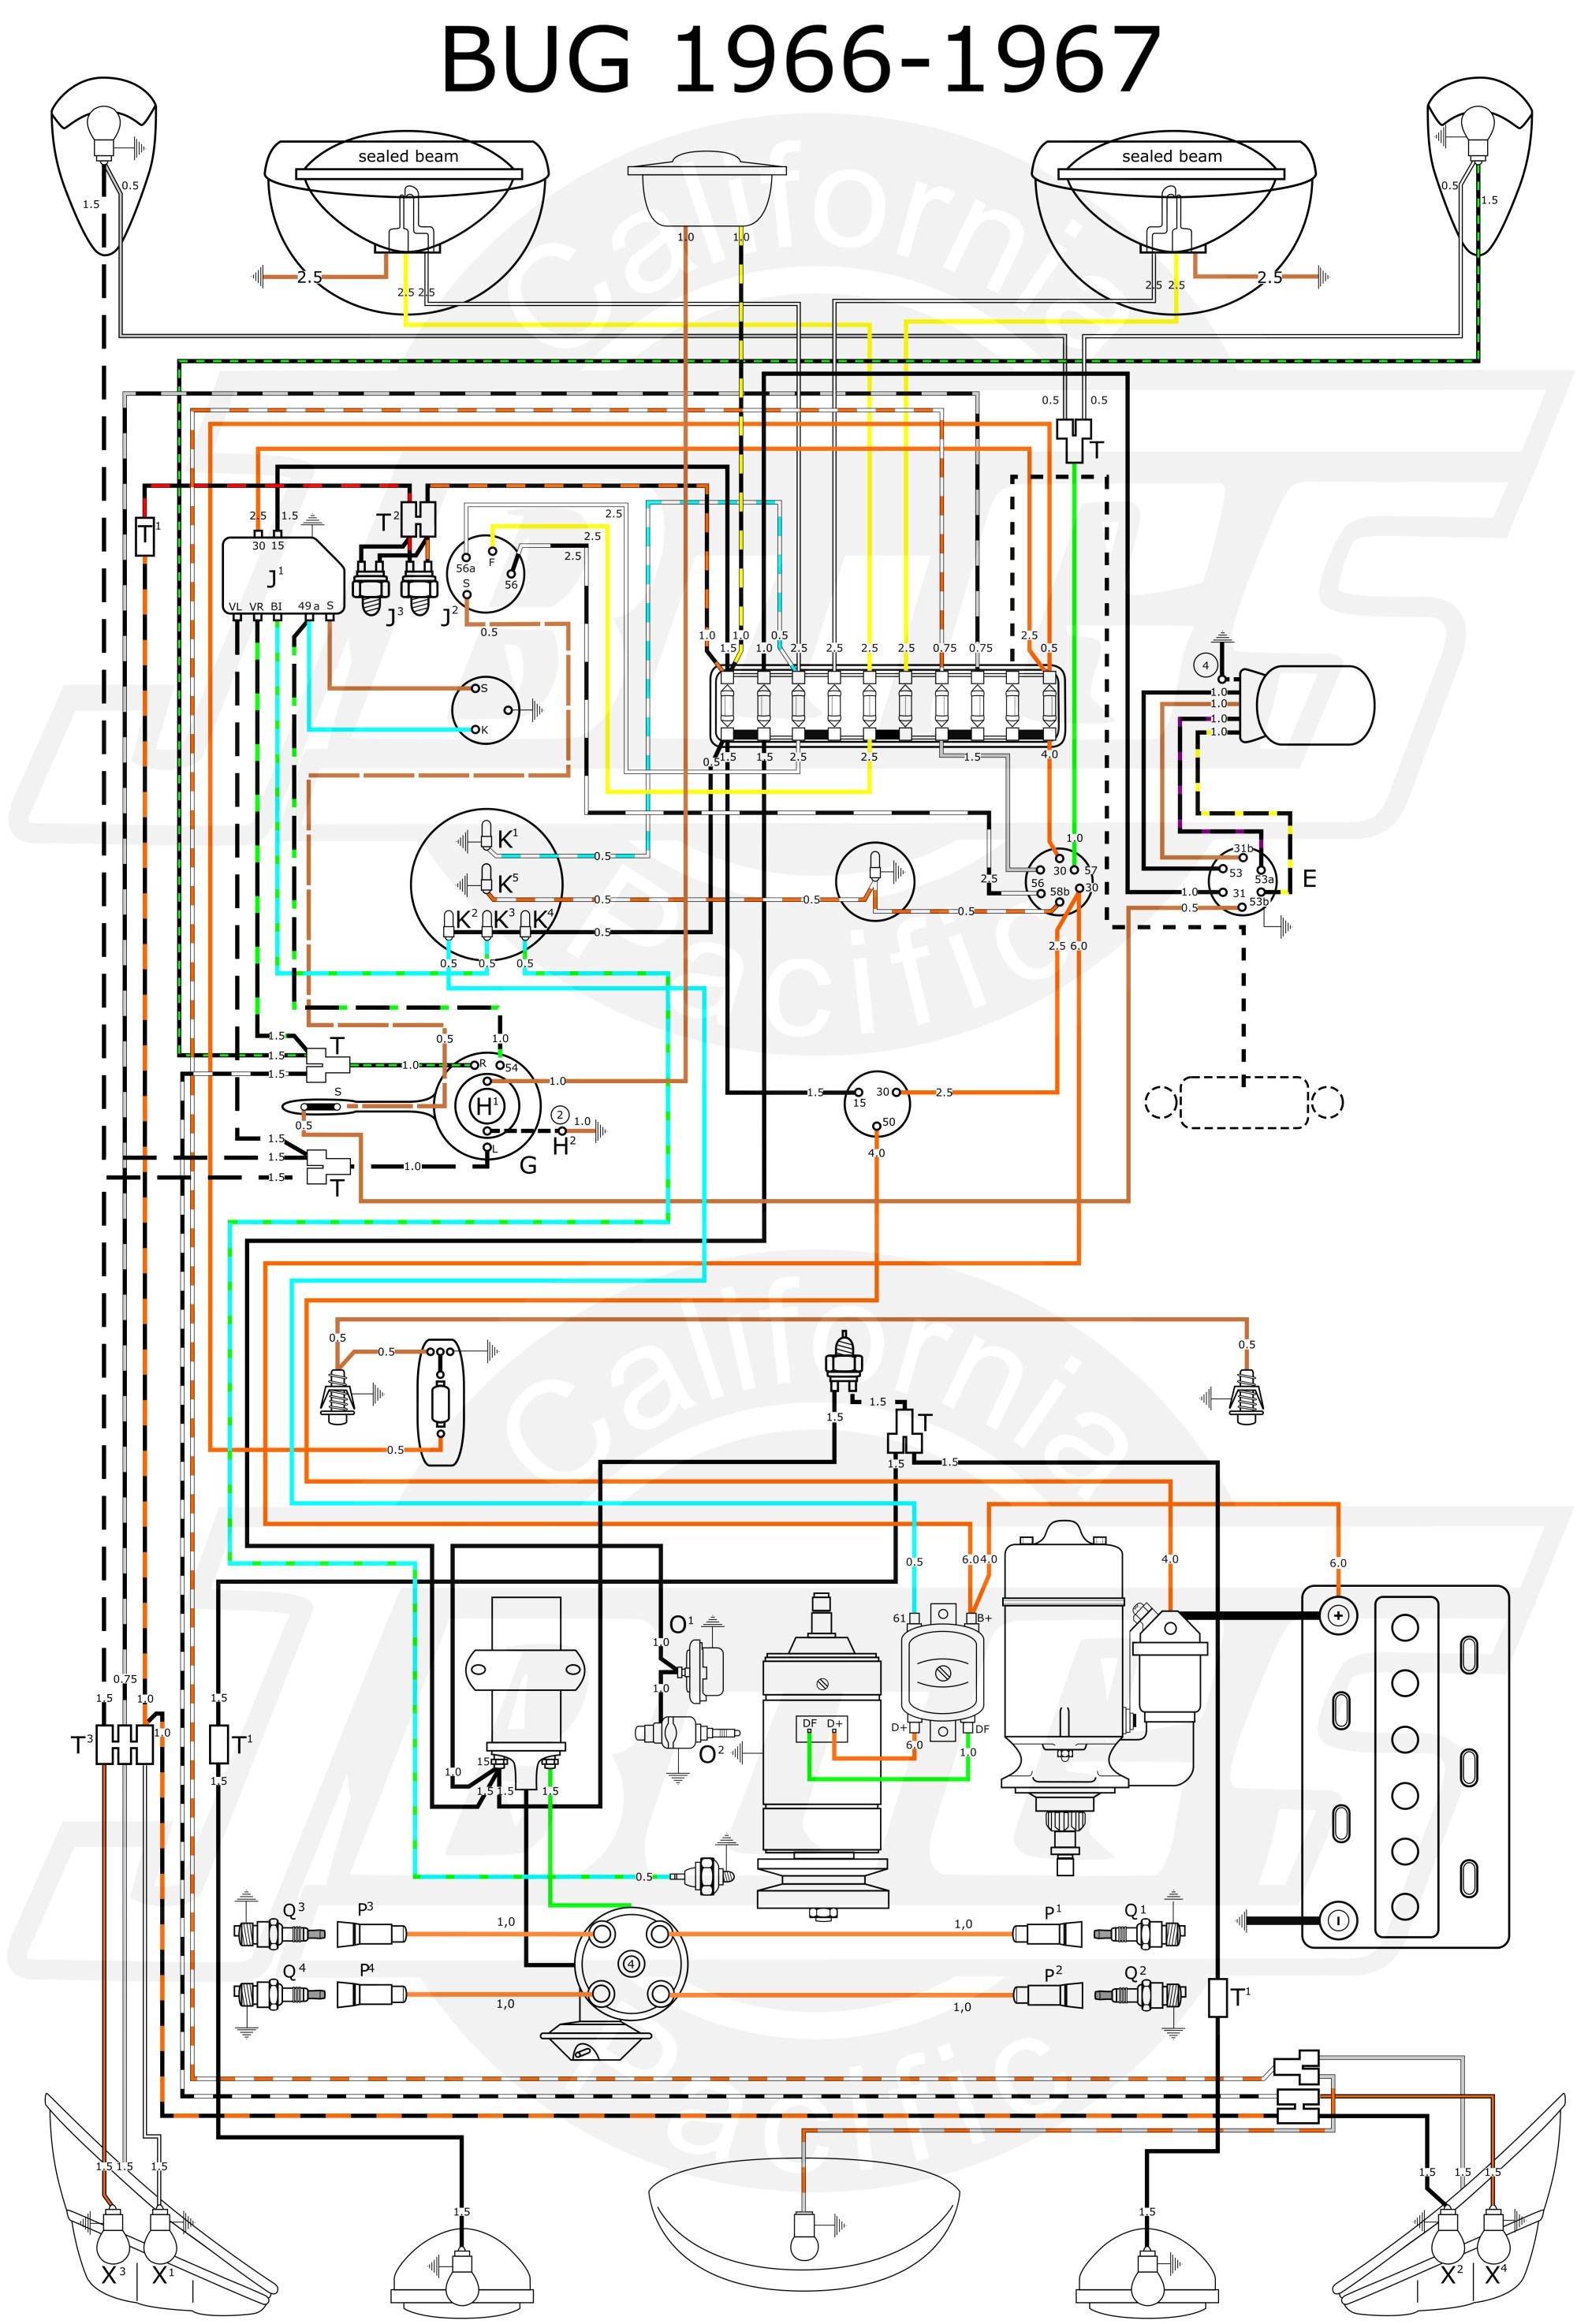 hight resolution of 1967 vw wiring diagram wiring diagram sheet 1967 vw bug headlight switch wiring